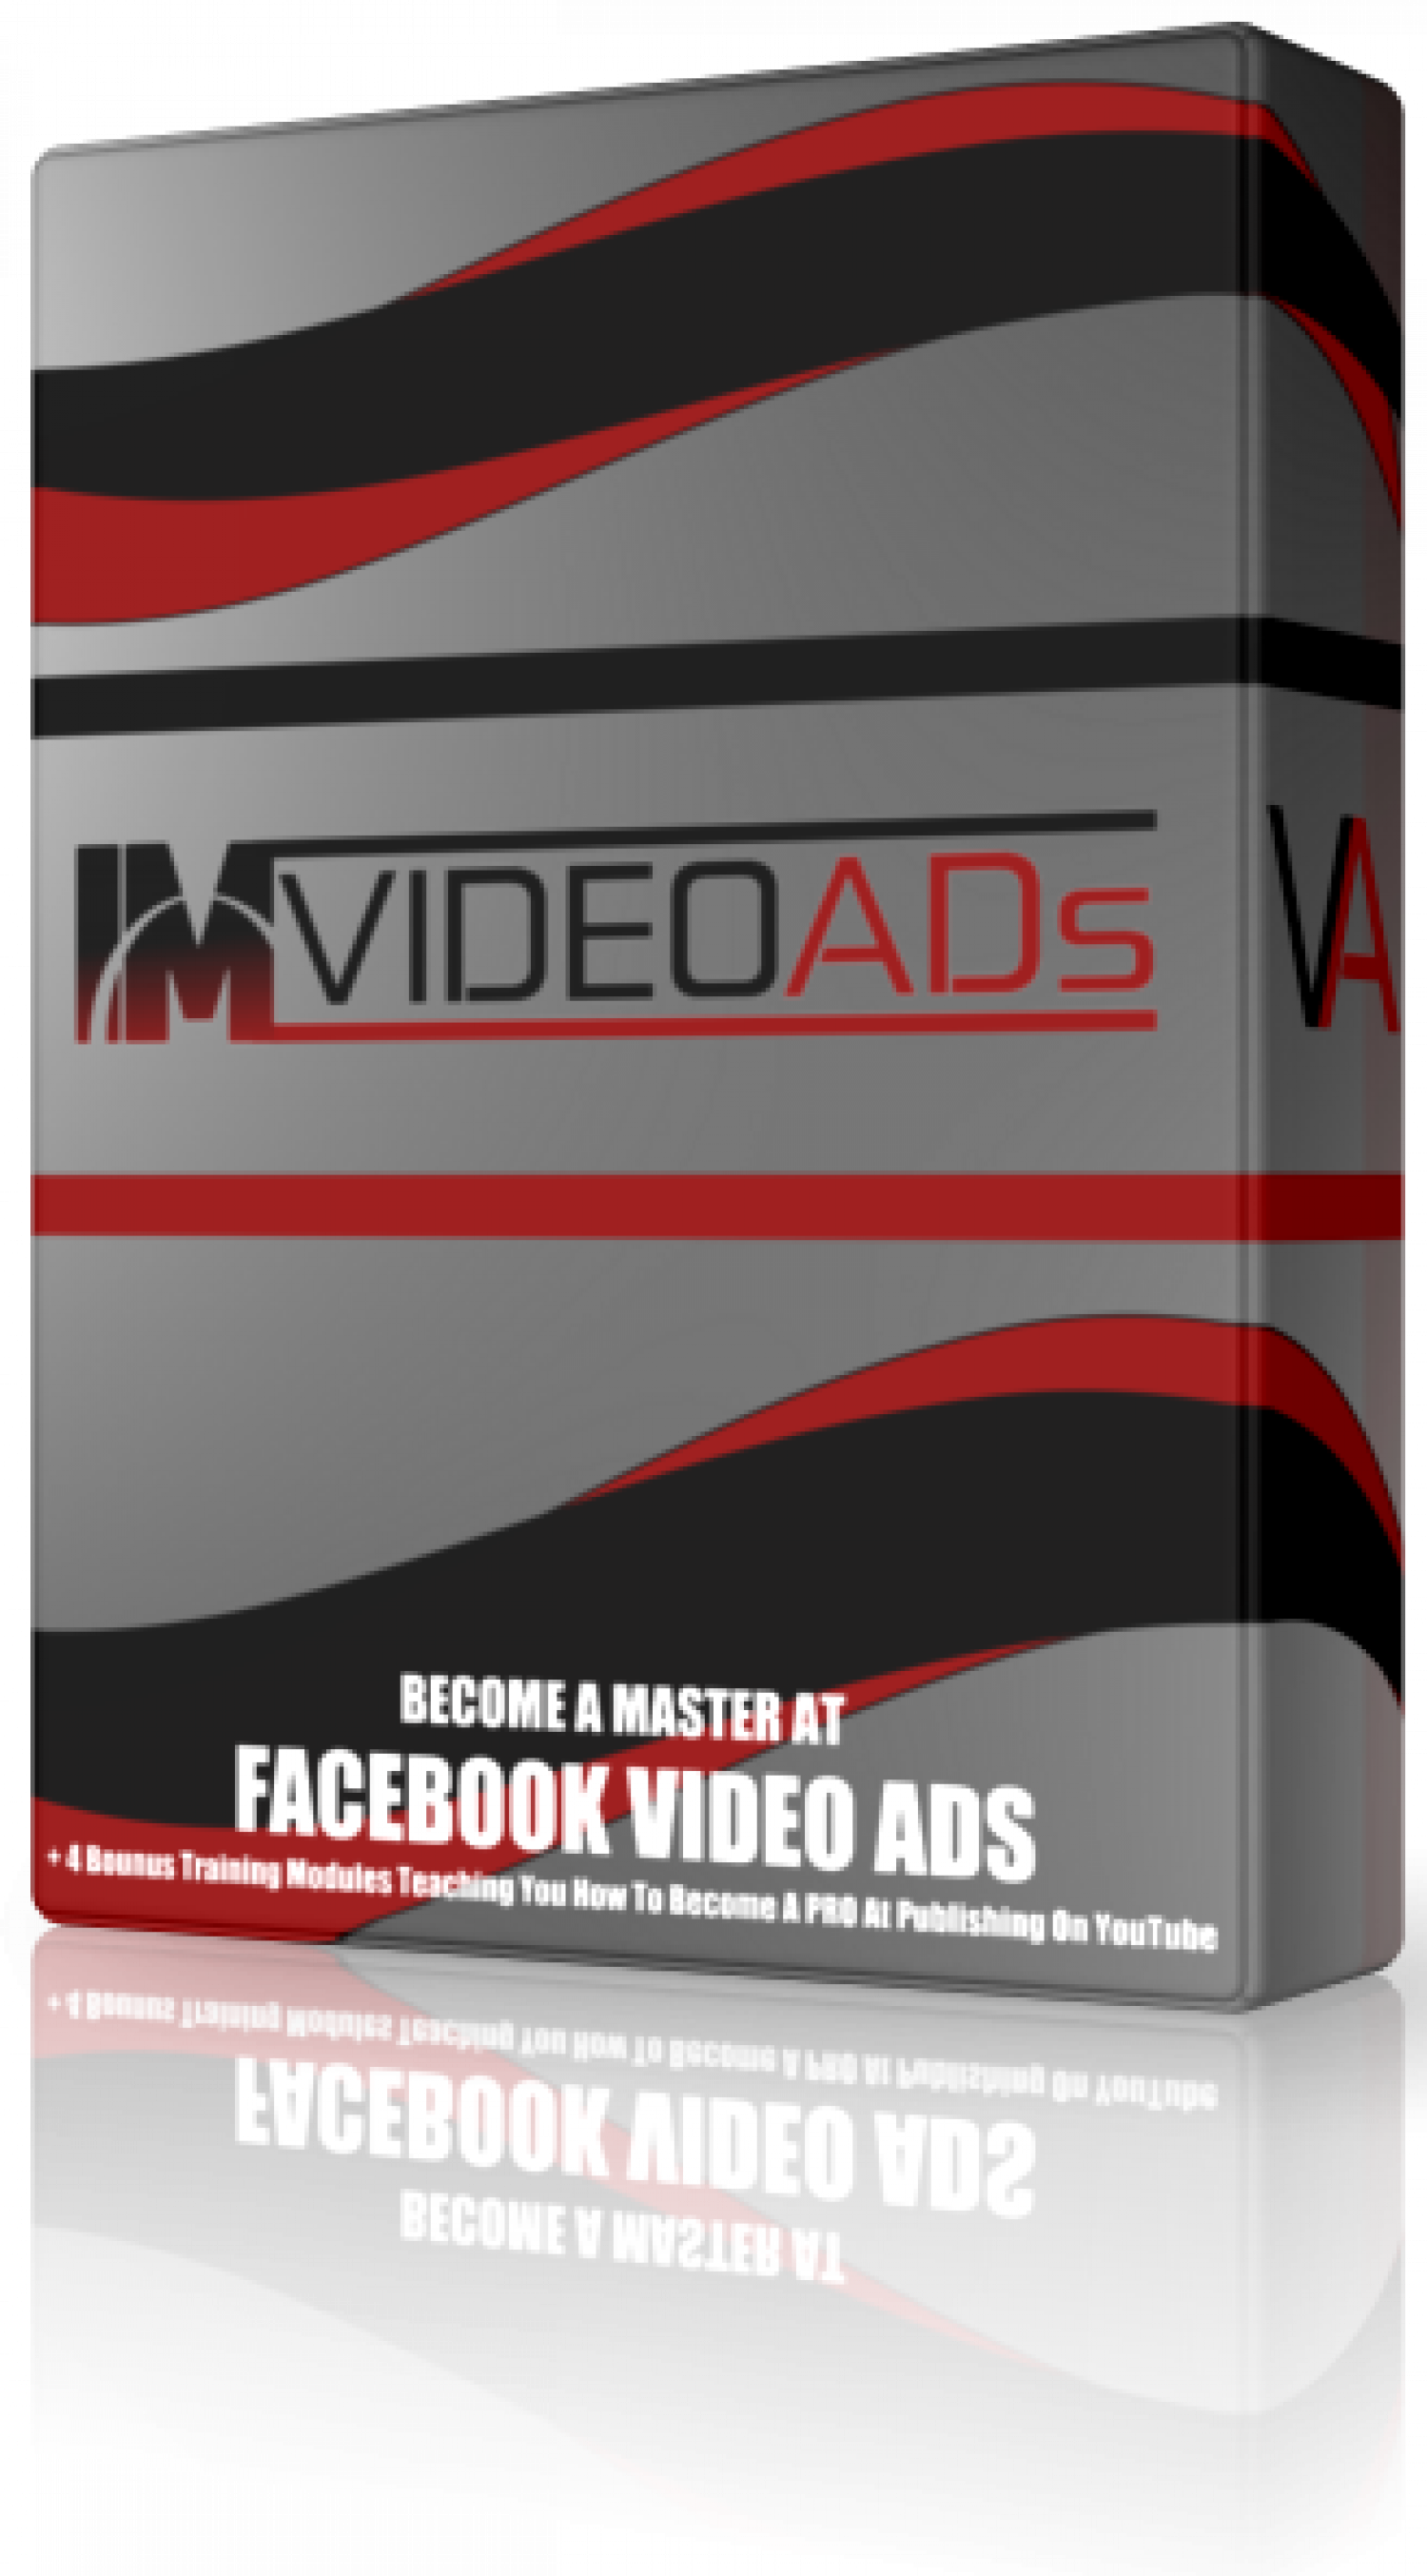 IM Video Ads Review and (MASSIVE) $23,800 BONUSES Infographic